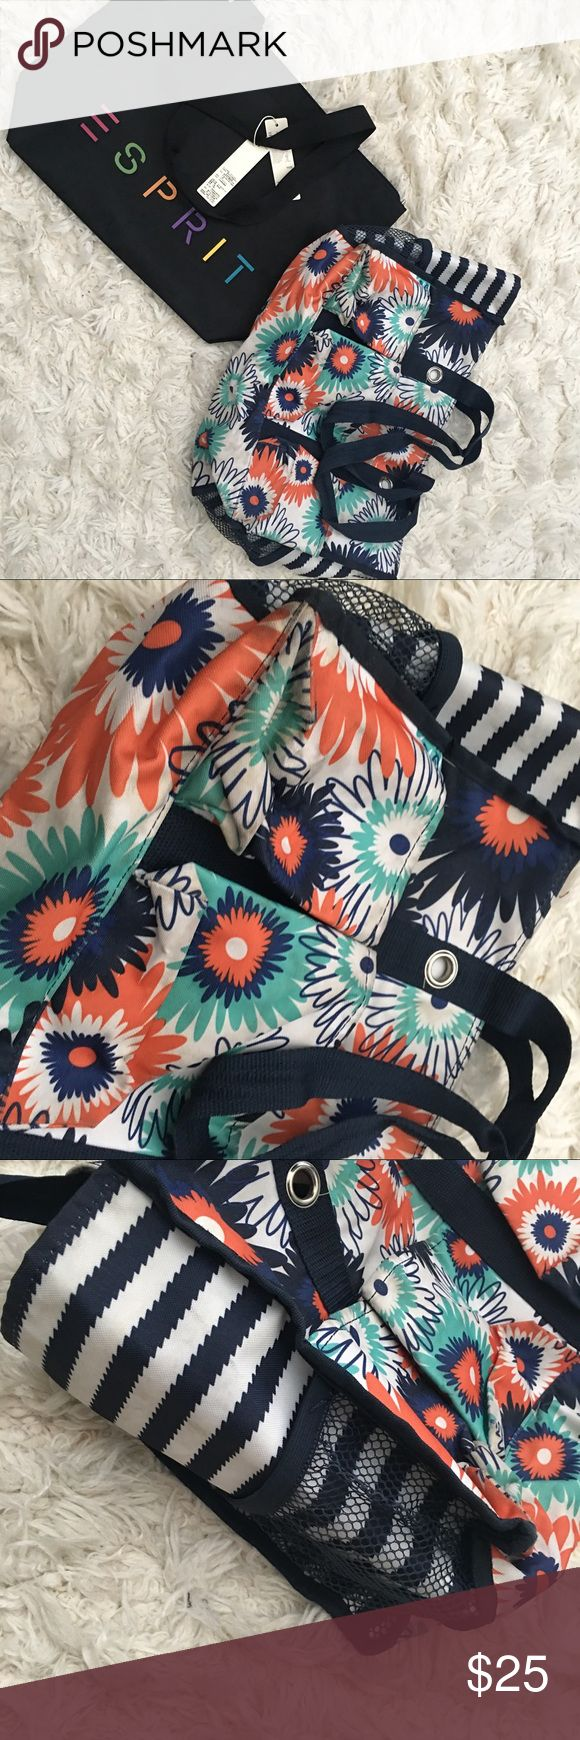 ESPRIT + THIRTY ONE BAG ESPRIT tote bag brand new with tags ($59.00) + THIRTY ONE tote utility bag ($45.00) used still in good condition. Esprit Bags Totes